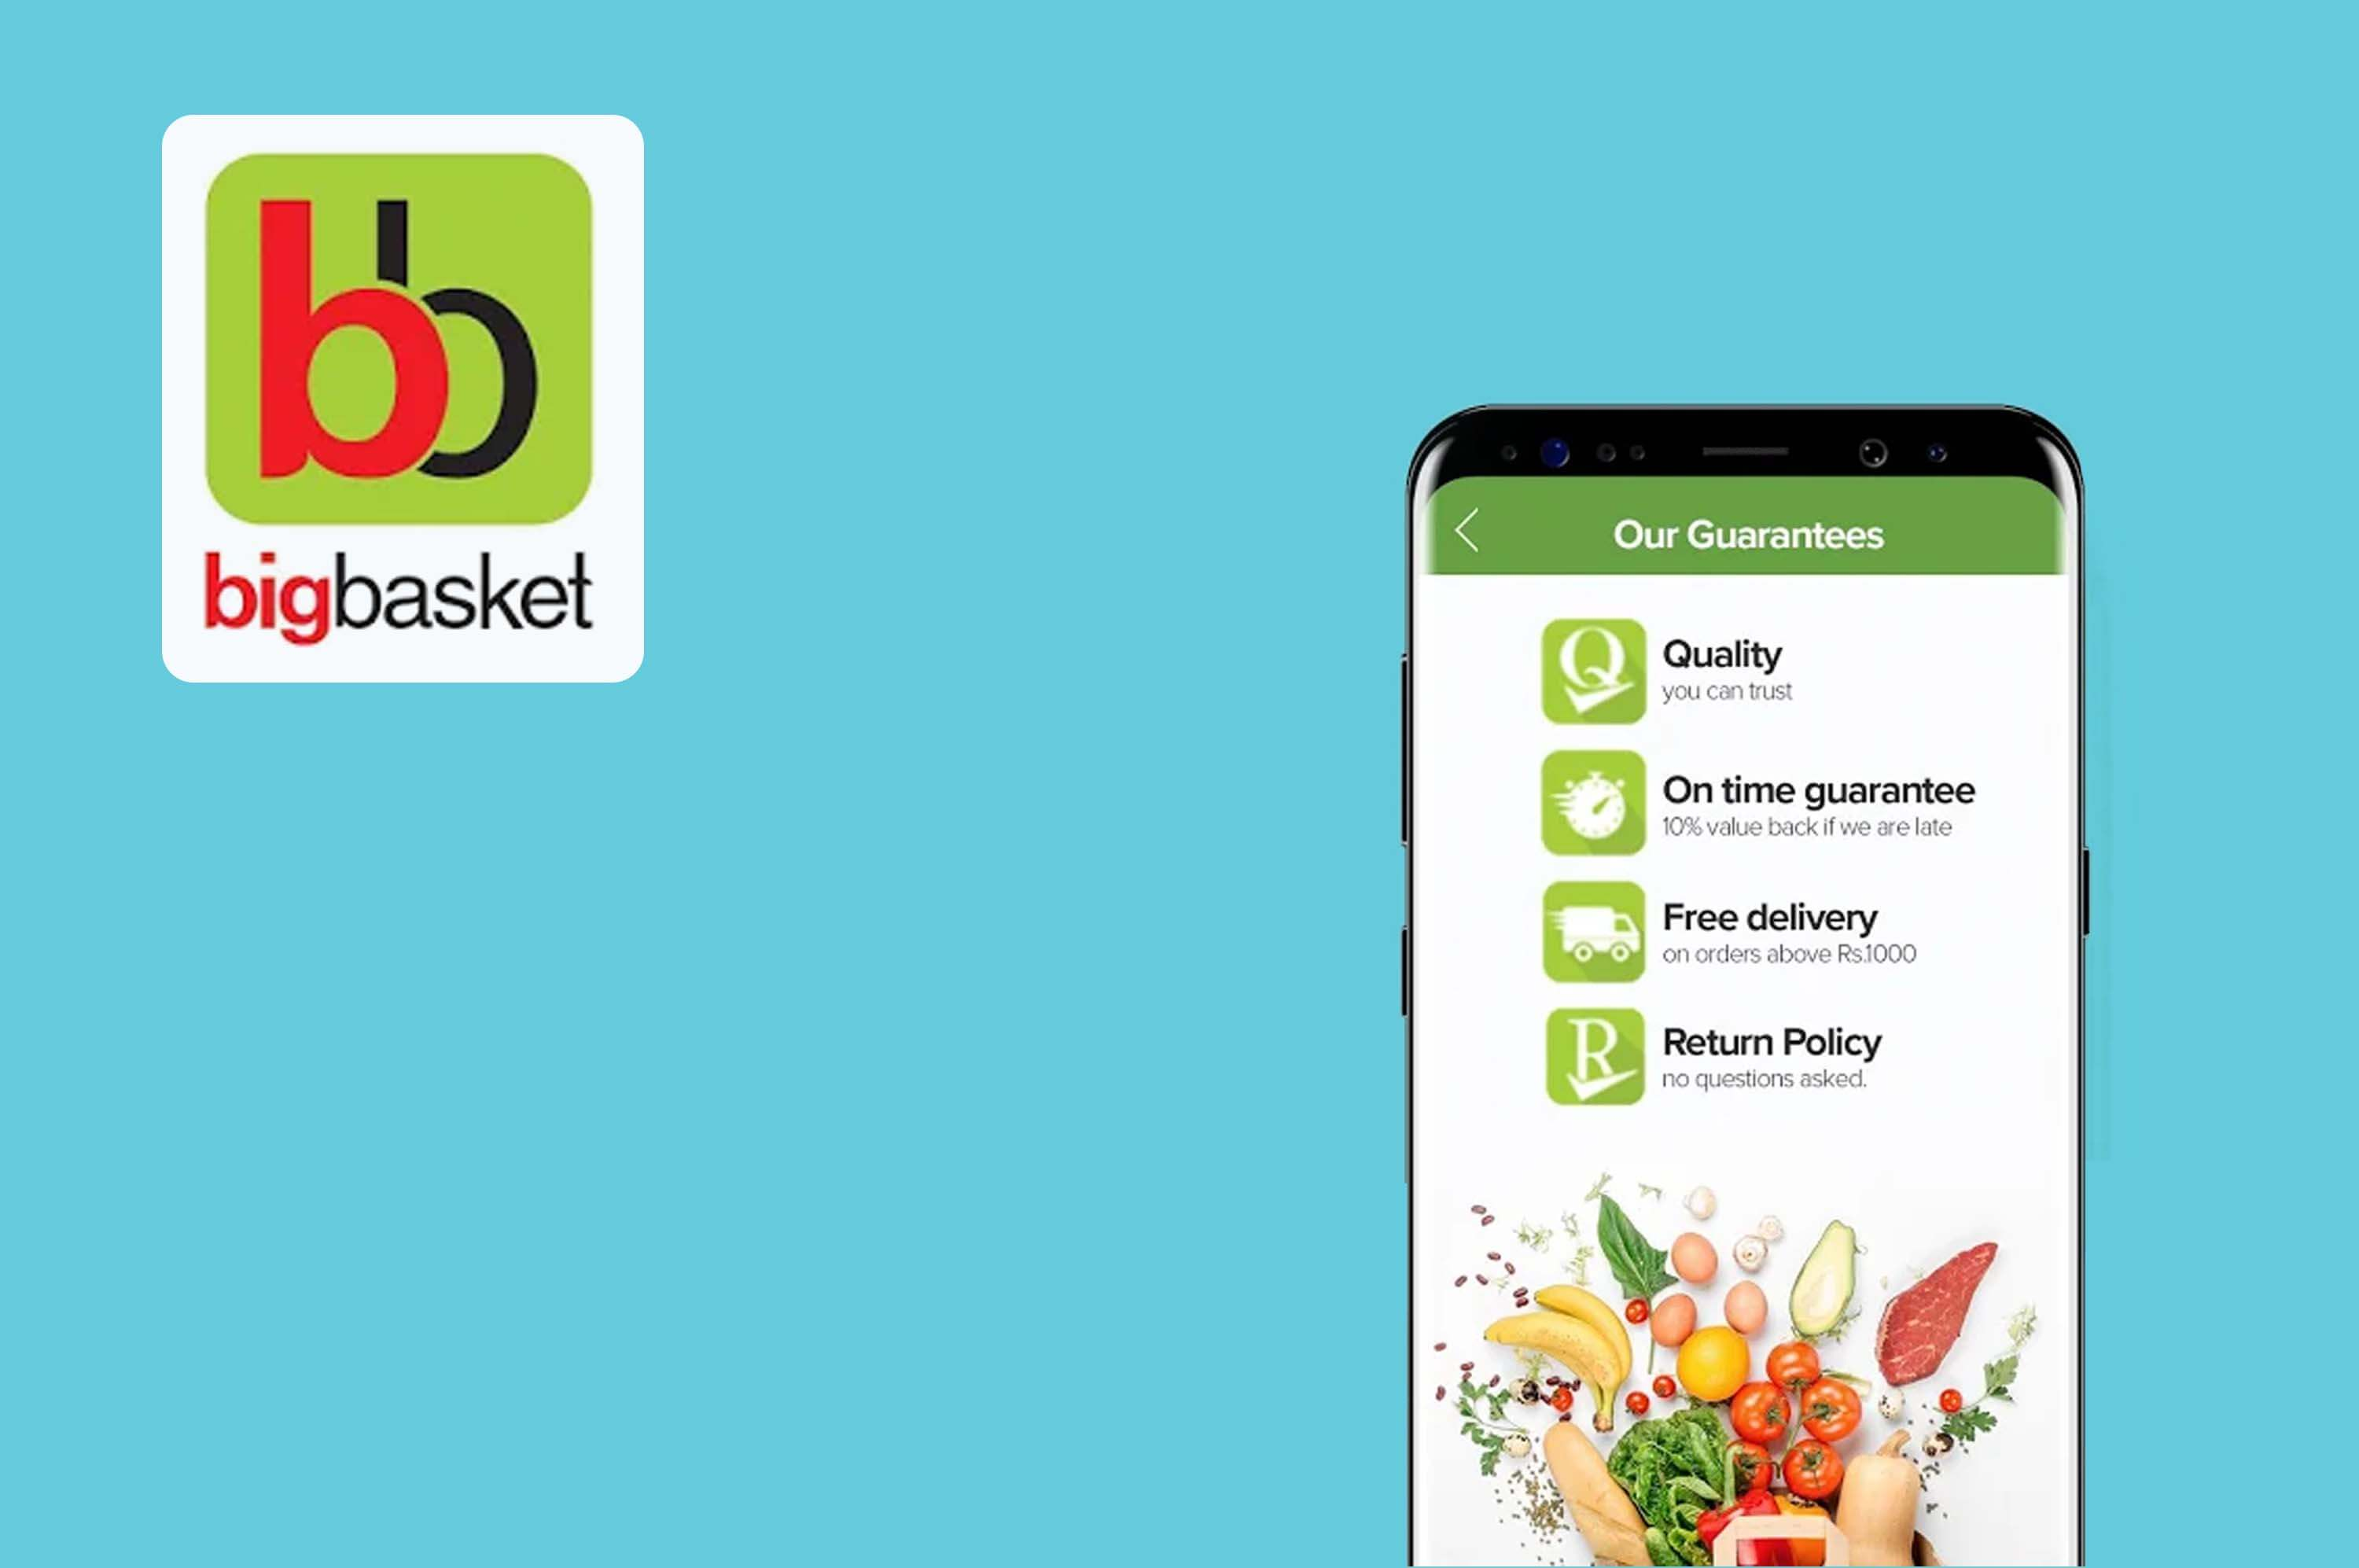 a smartphone with big basket app opened